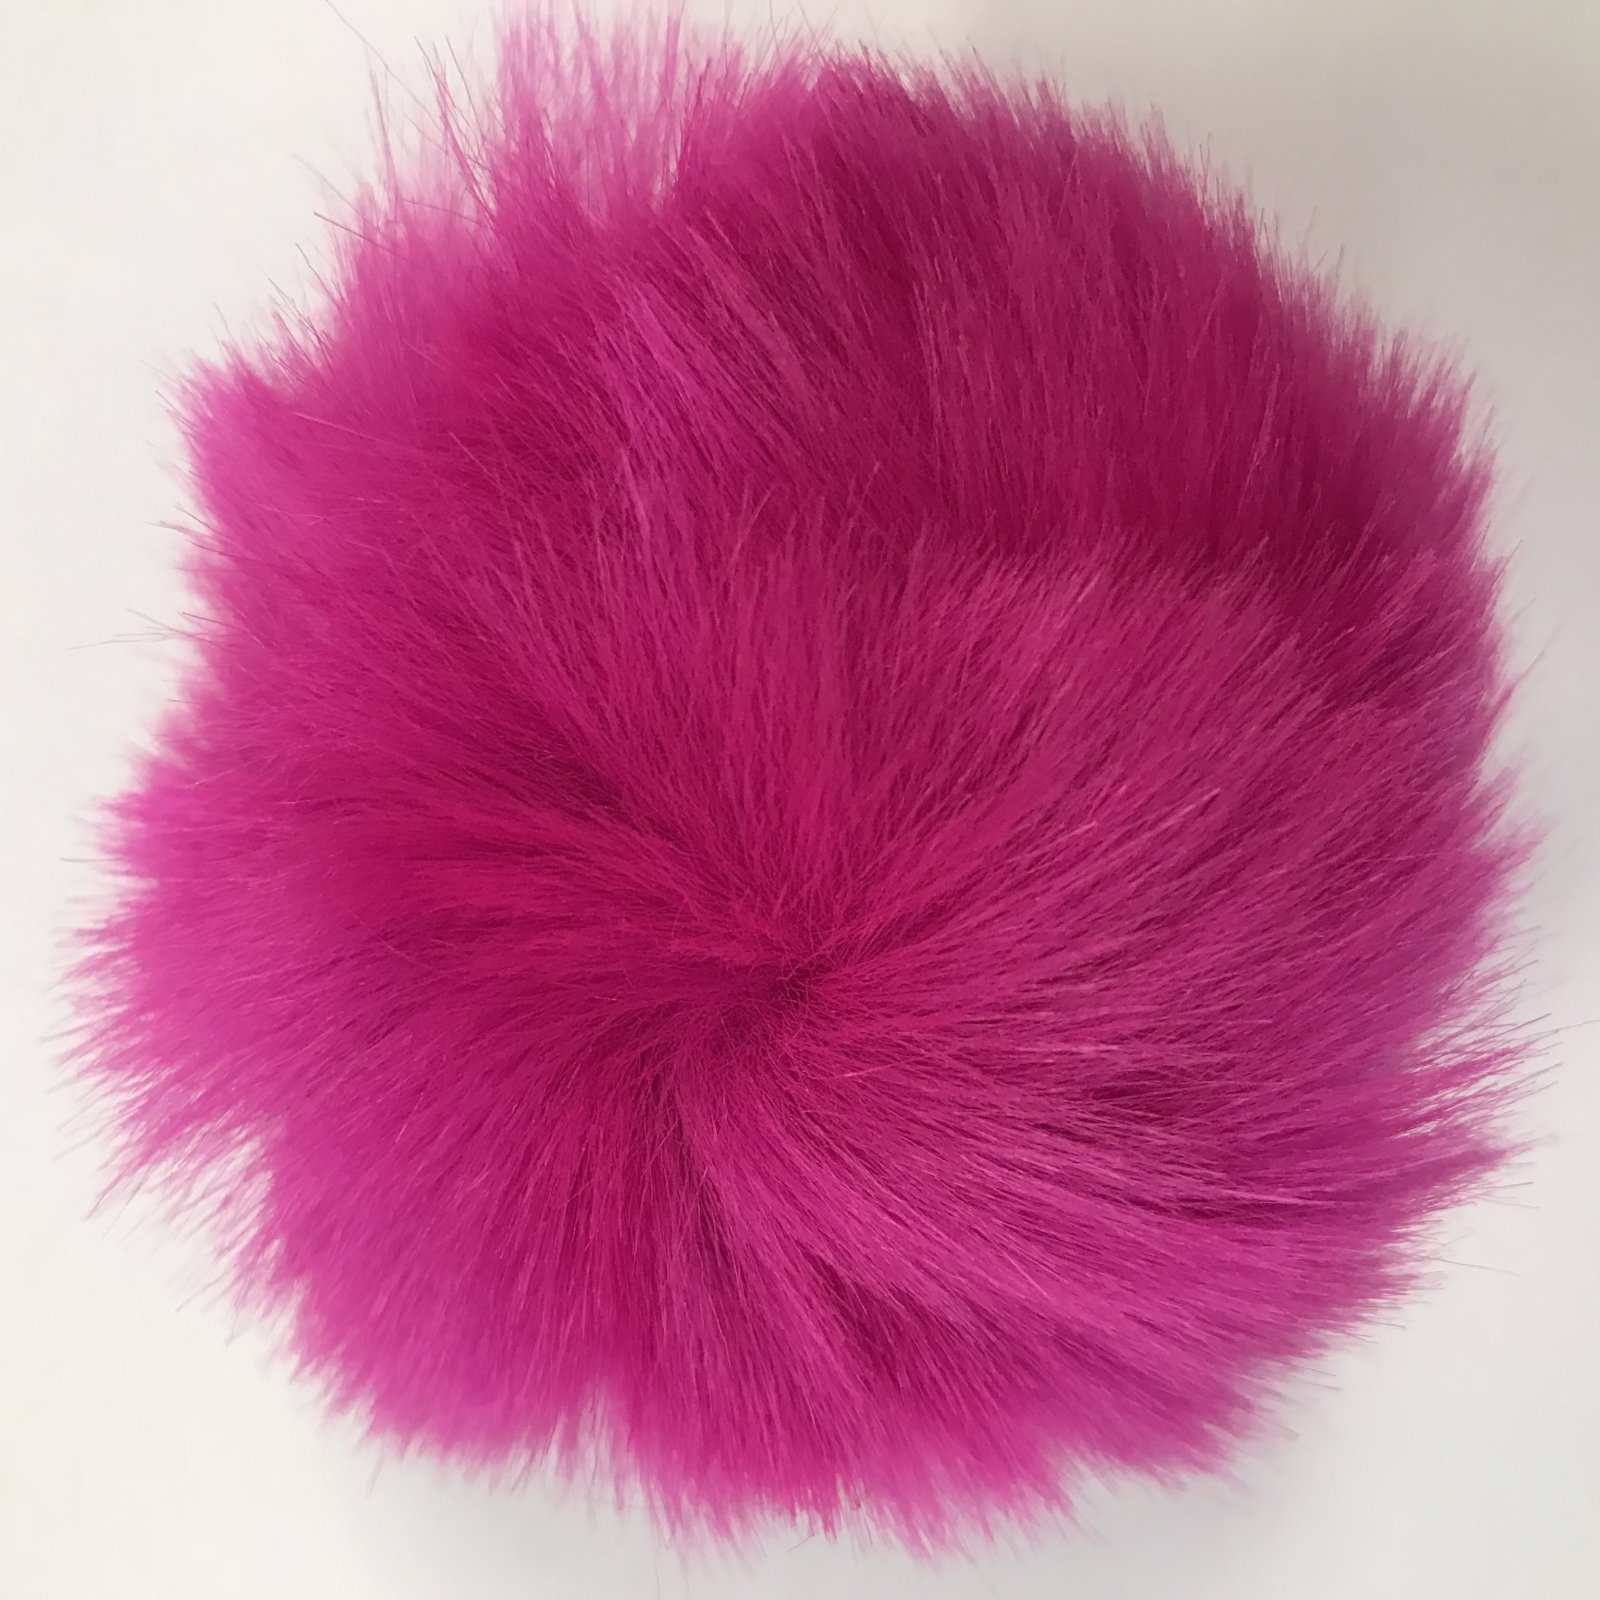 Faux Fur Poms 9 cm - Hot Pink